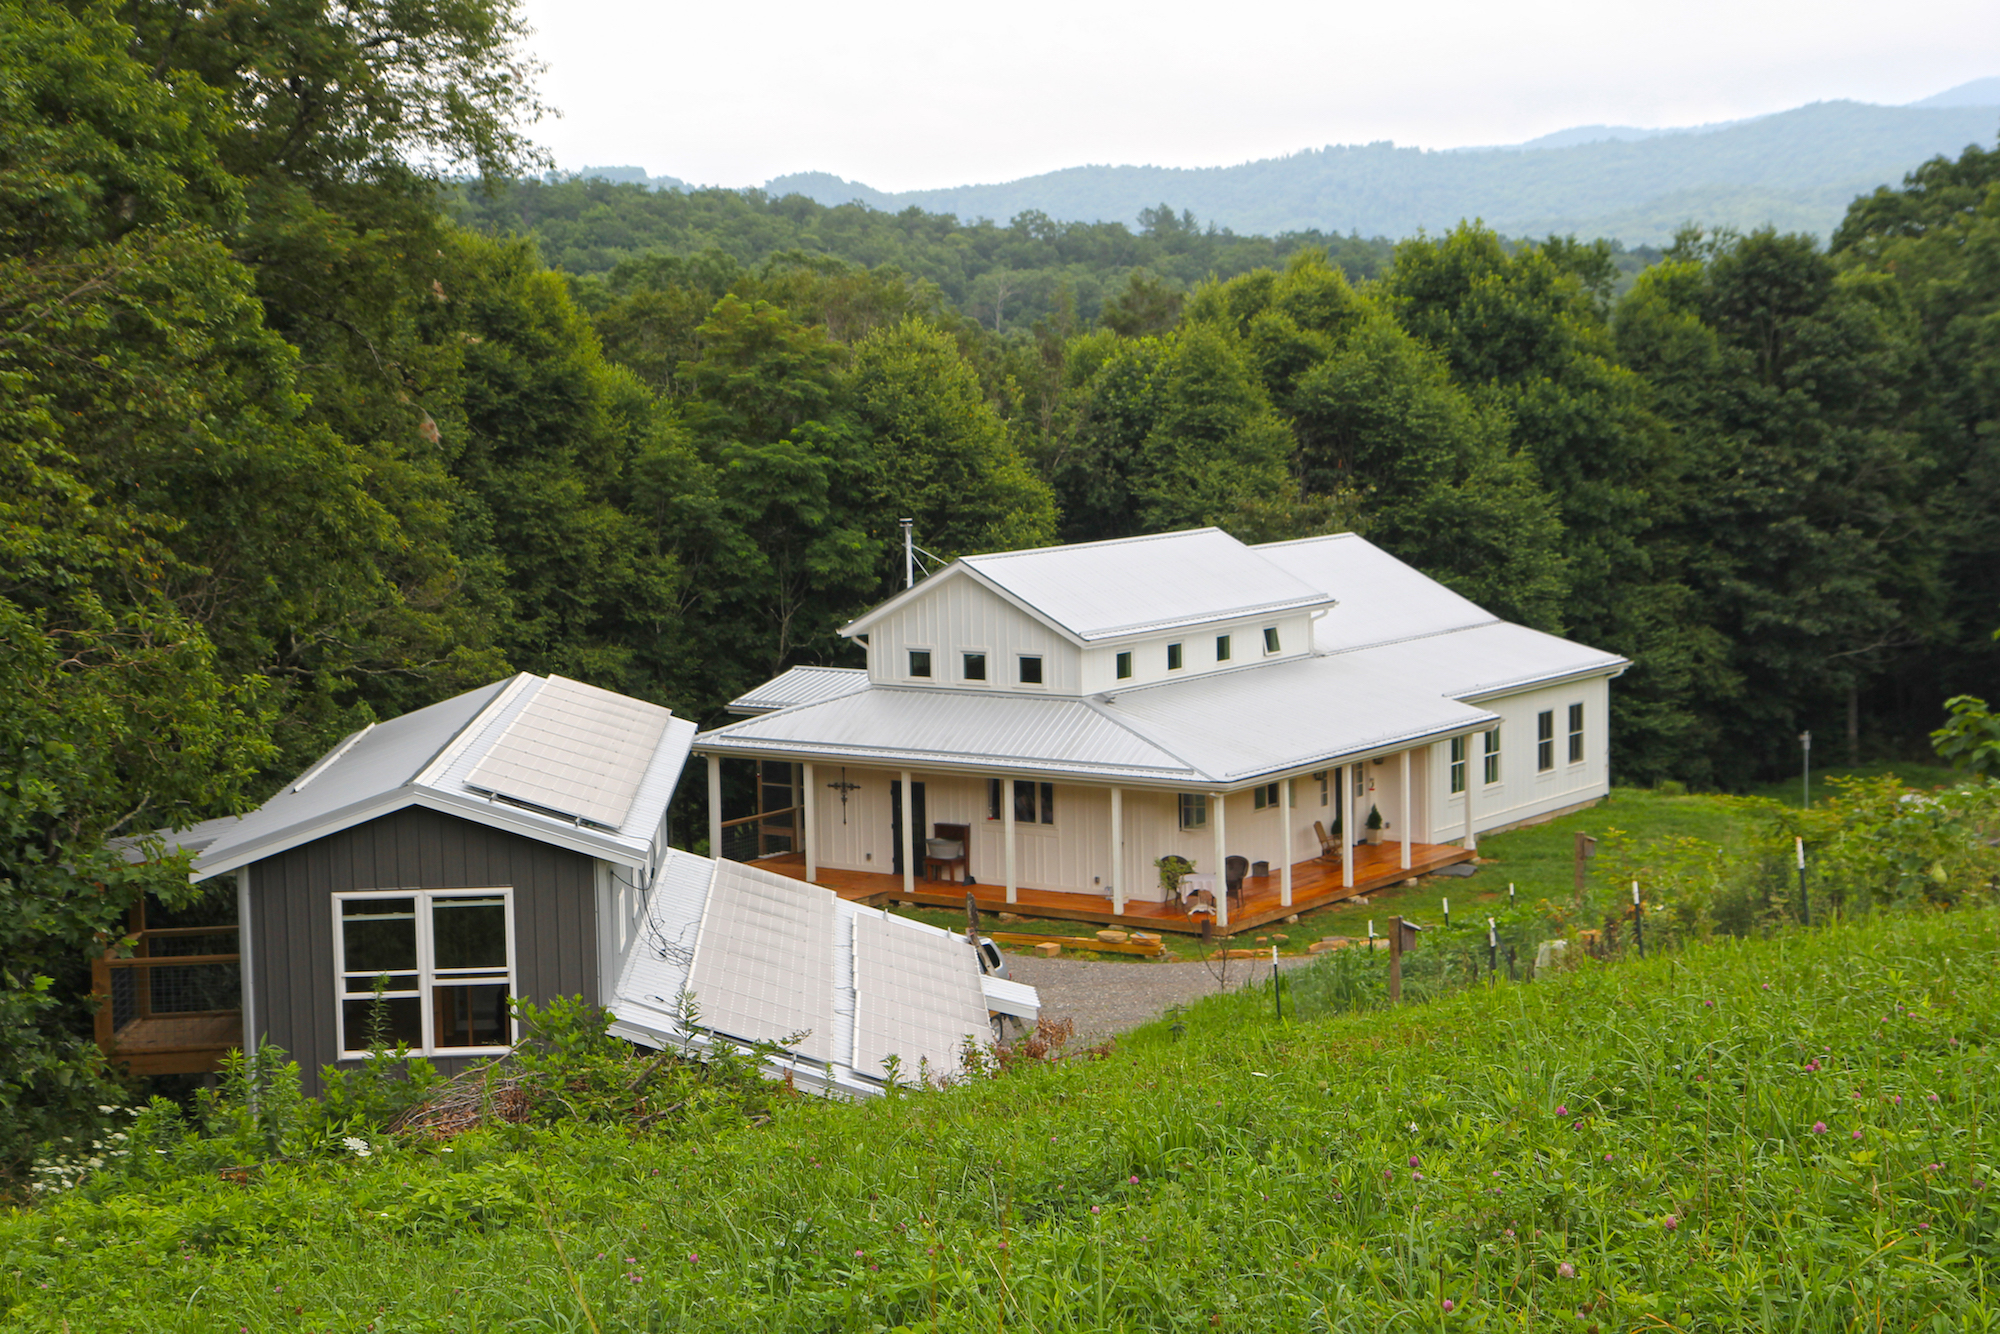 Yancey County Dream Home Tour